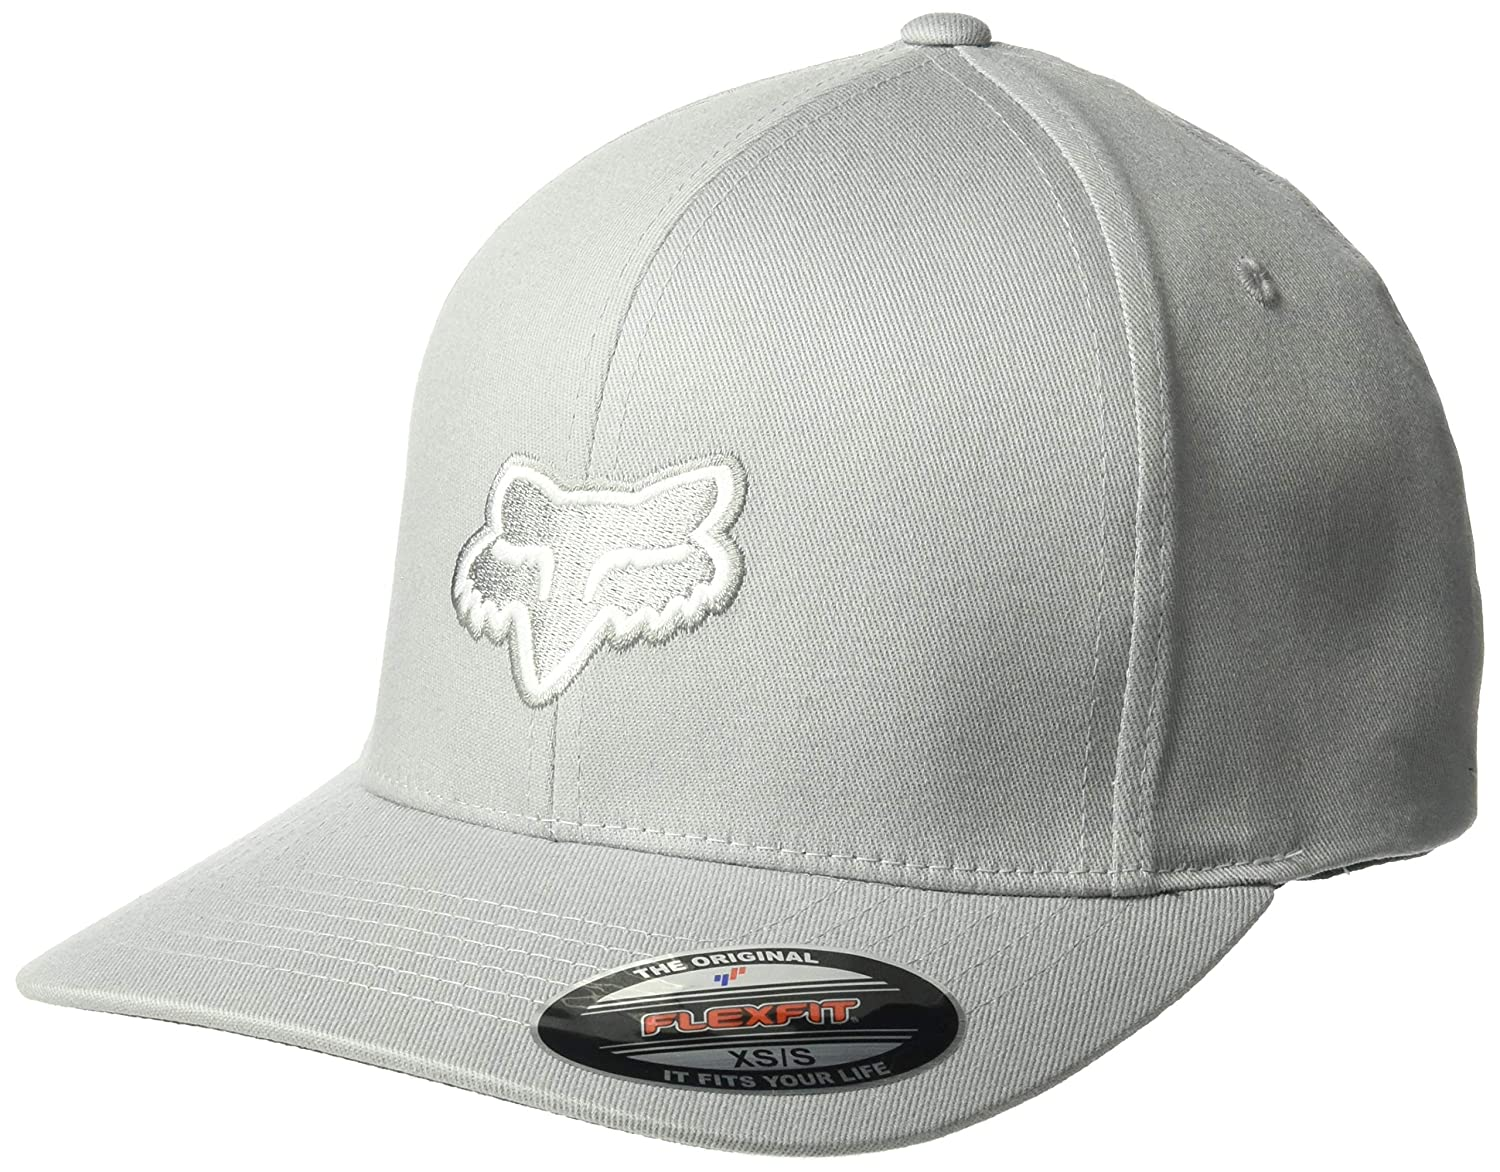 3a216561ff477b Fox Men's Legacy Hat: Amazon.ca: Clothing & Accessories